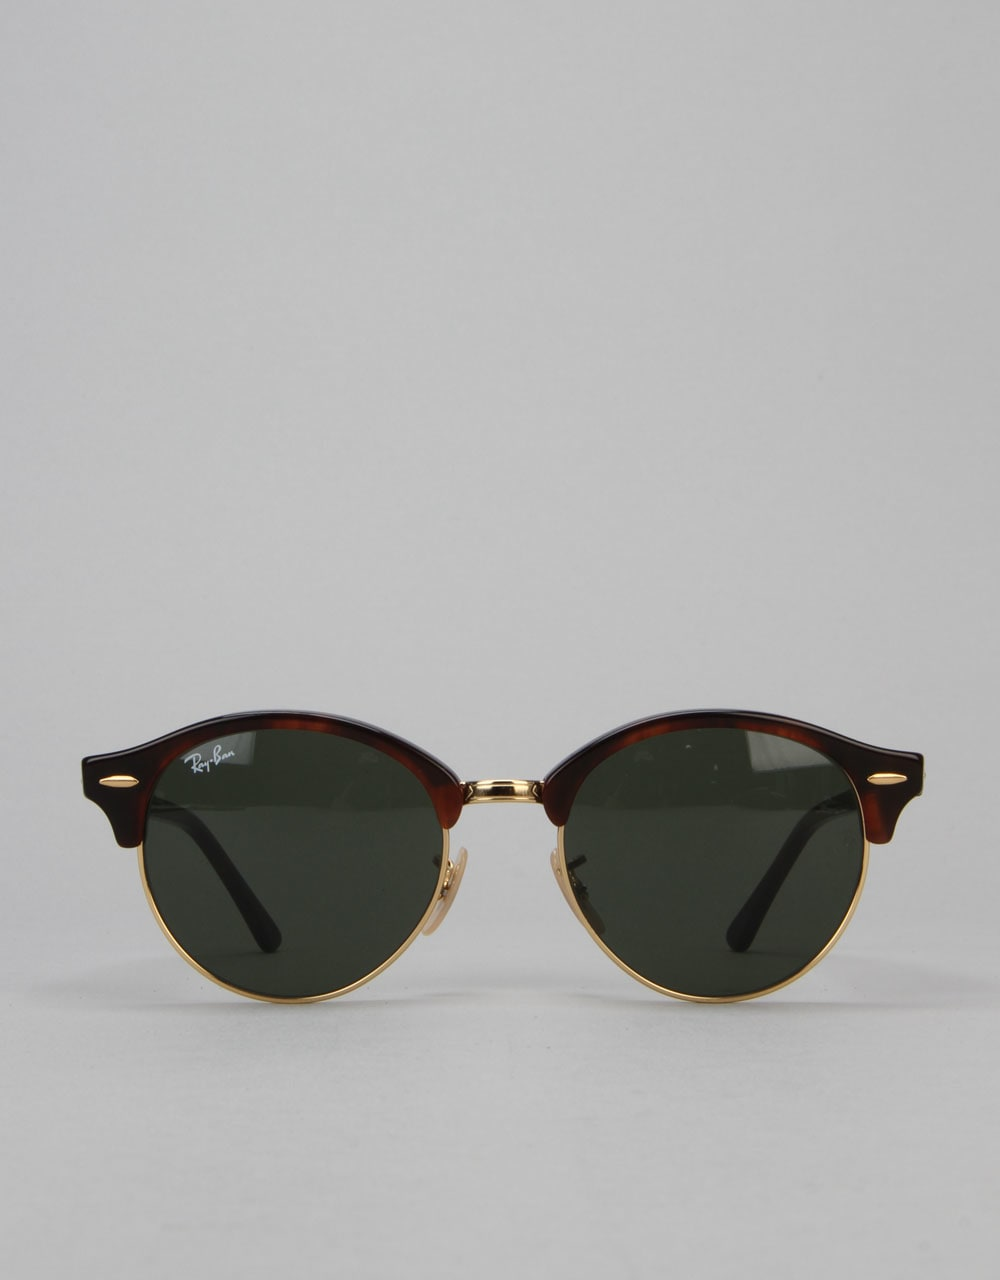 a778864c49e Ray-Ban Club Round Sunglasses - Red Havana Green RB4246 990 51 ...